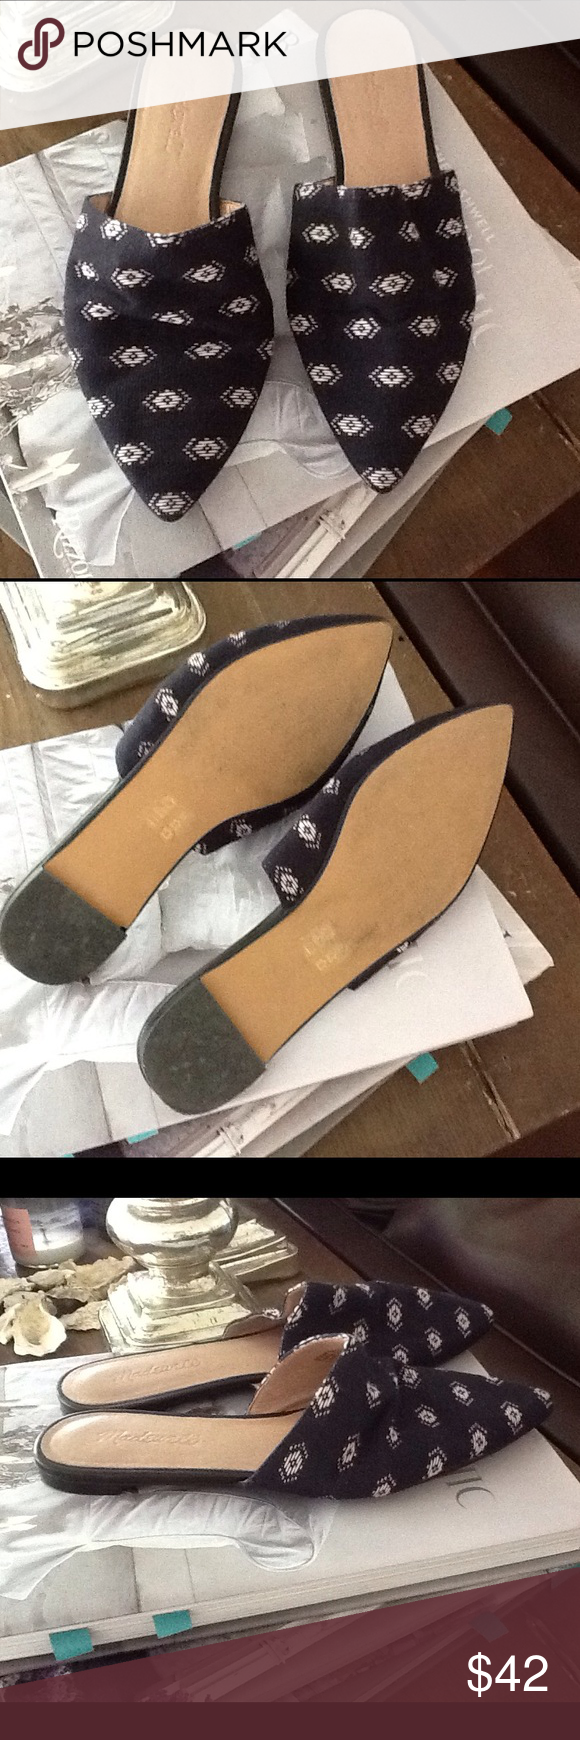 Madewell slides Madewell fabric printed slides. Dark navy. Brand new, never been worn. Madewell Shoes